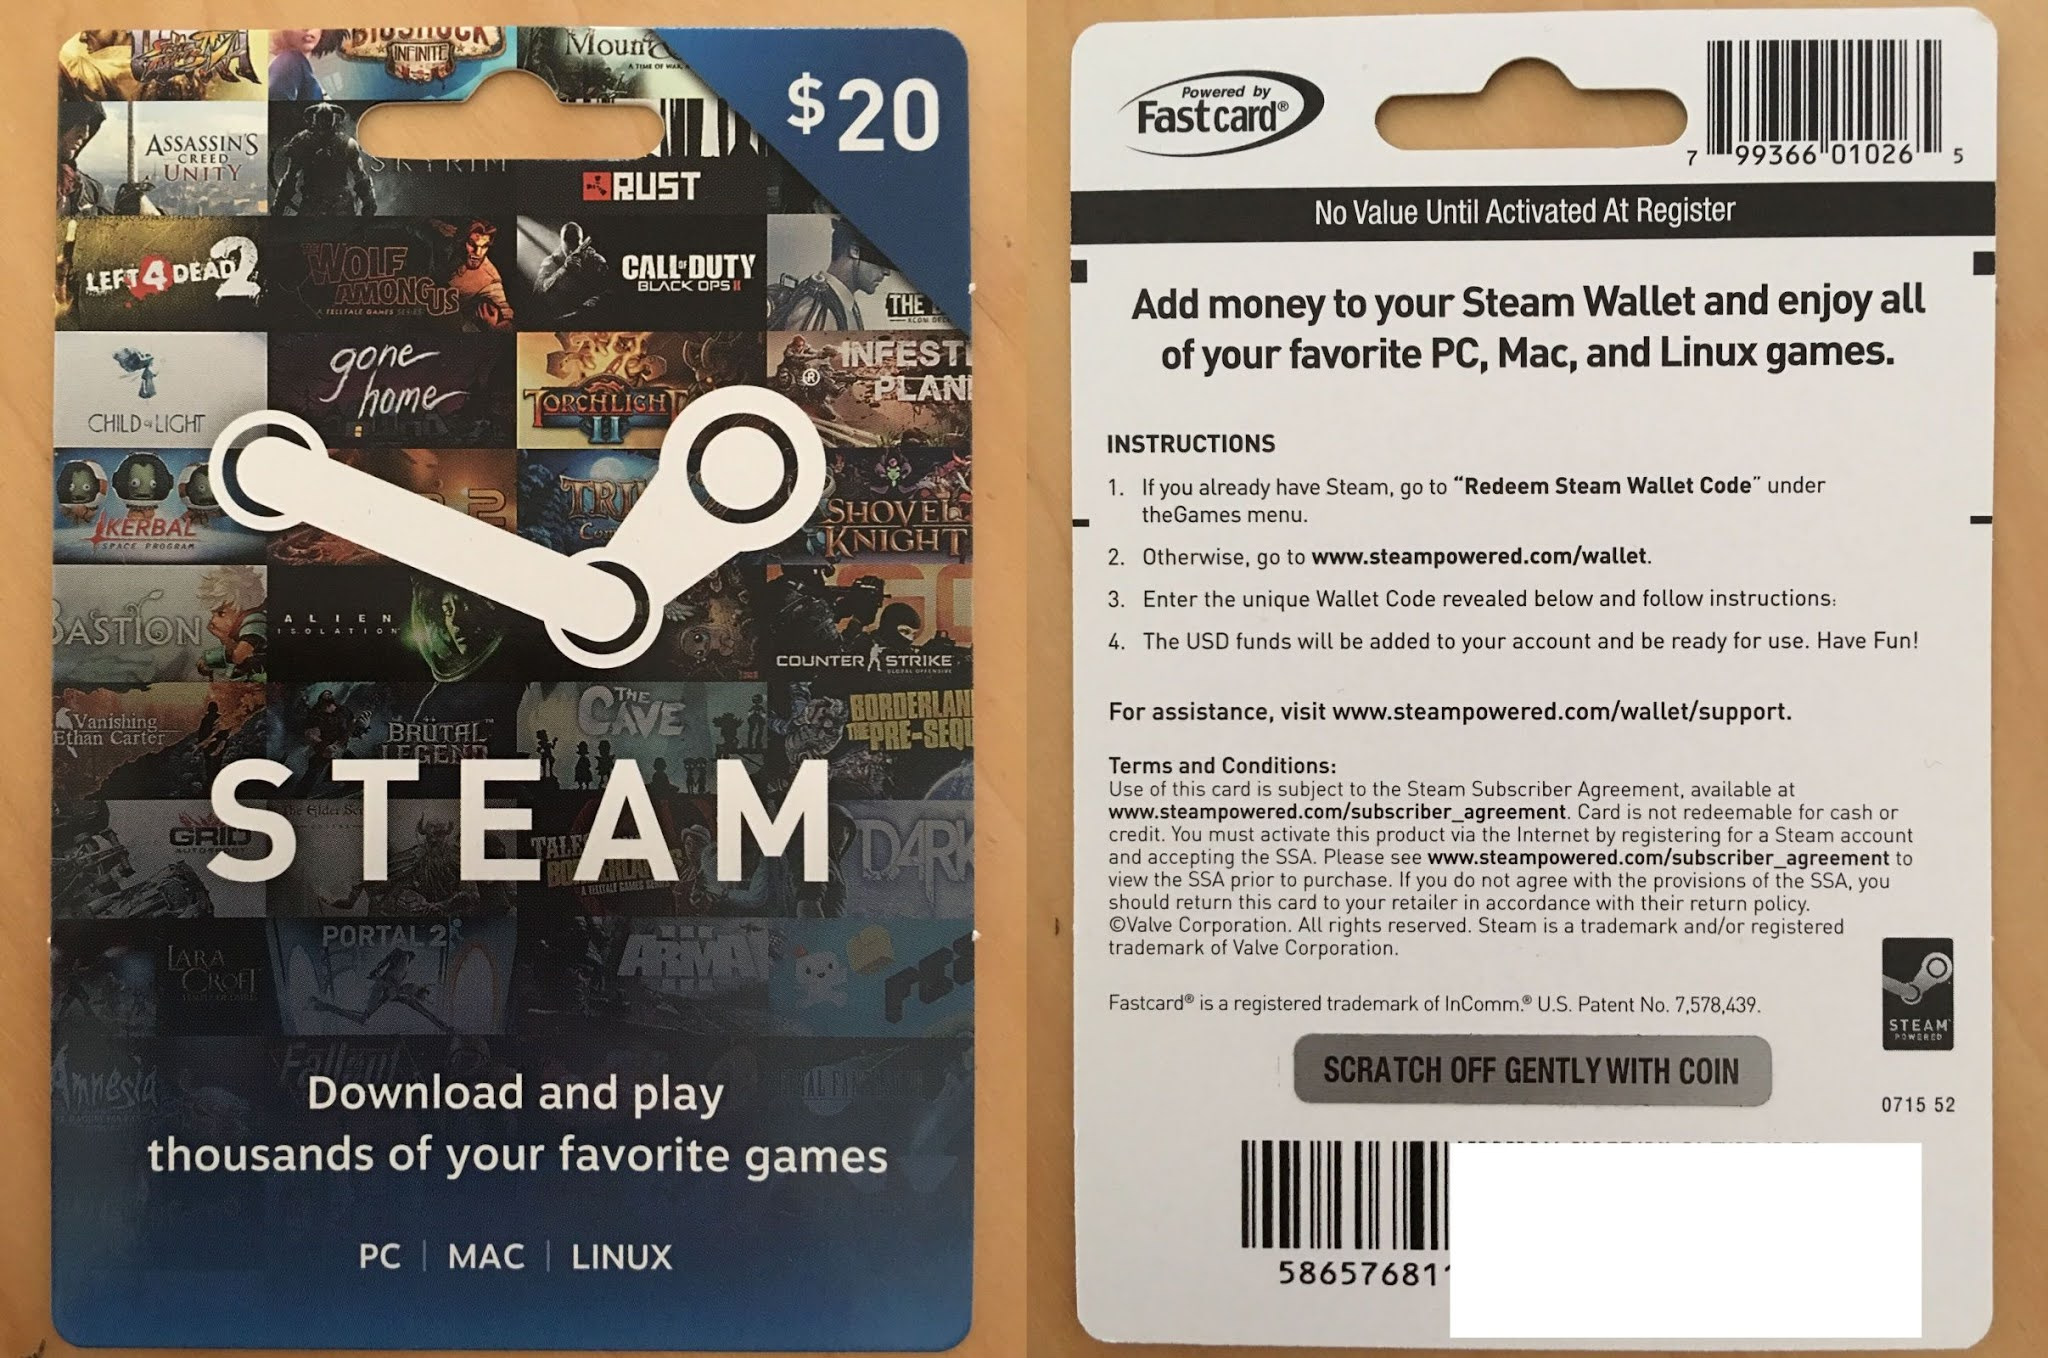 free steam wallet gift card,free steam wallet gift card codes,free steam wallet gift cards,free steam wallet gift card codes generator,free steam gift cards codes,free 20 dollar steam card,5$ steam card free,steam code generator,5 dollar steam card free,1